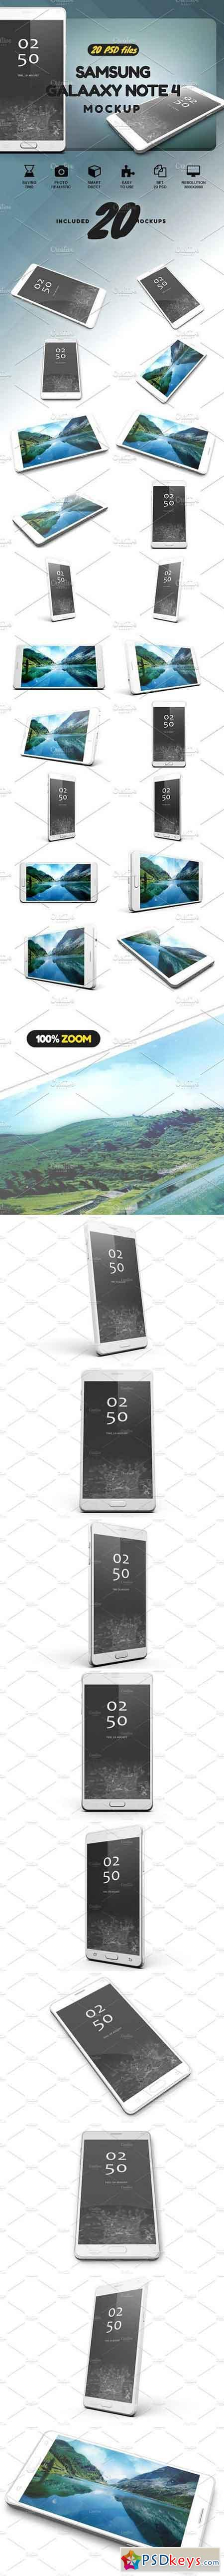 Samsung Galaxy Note 4 Mock-up 1990367